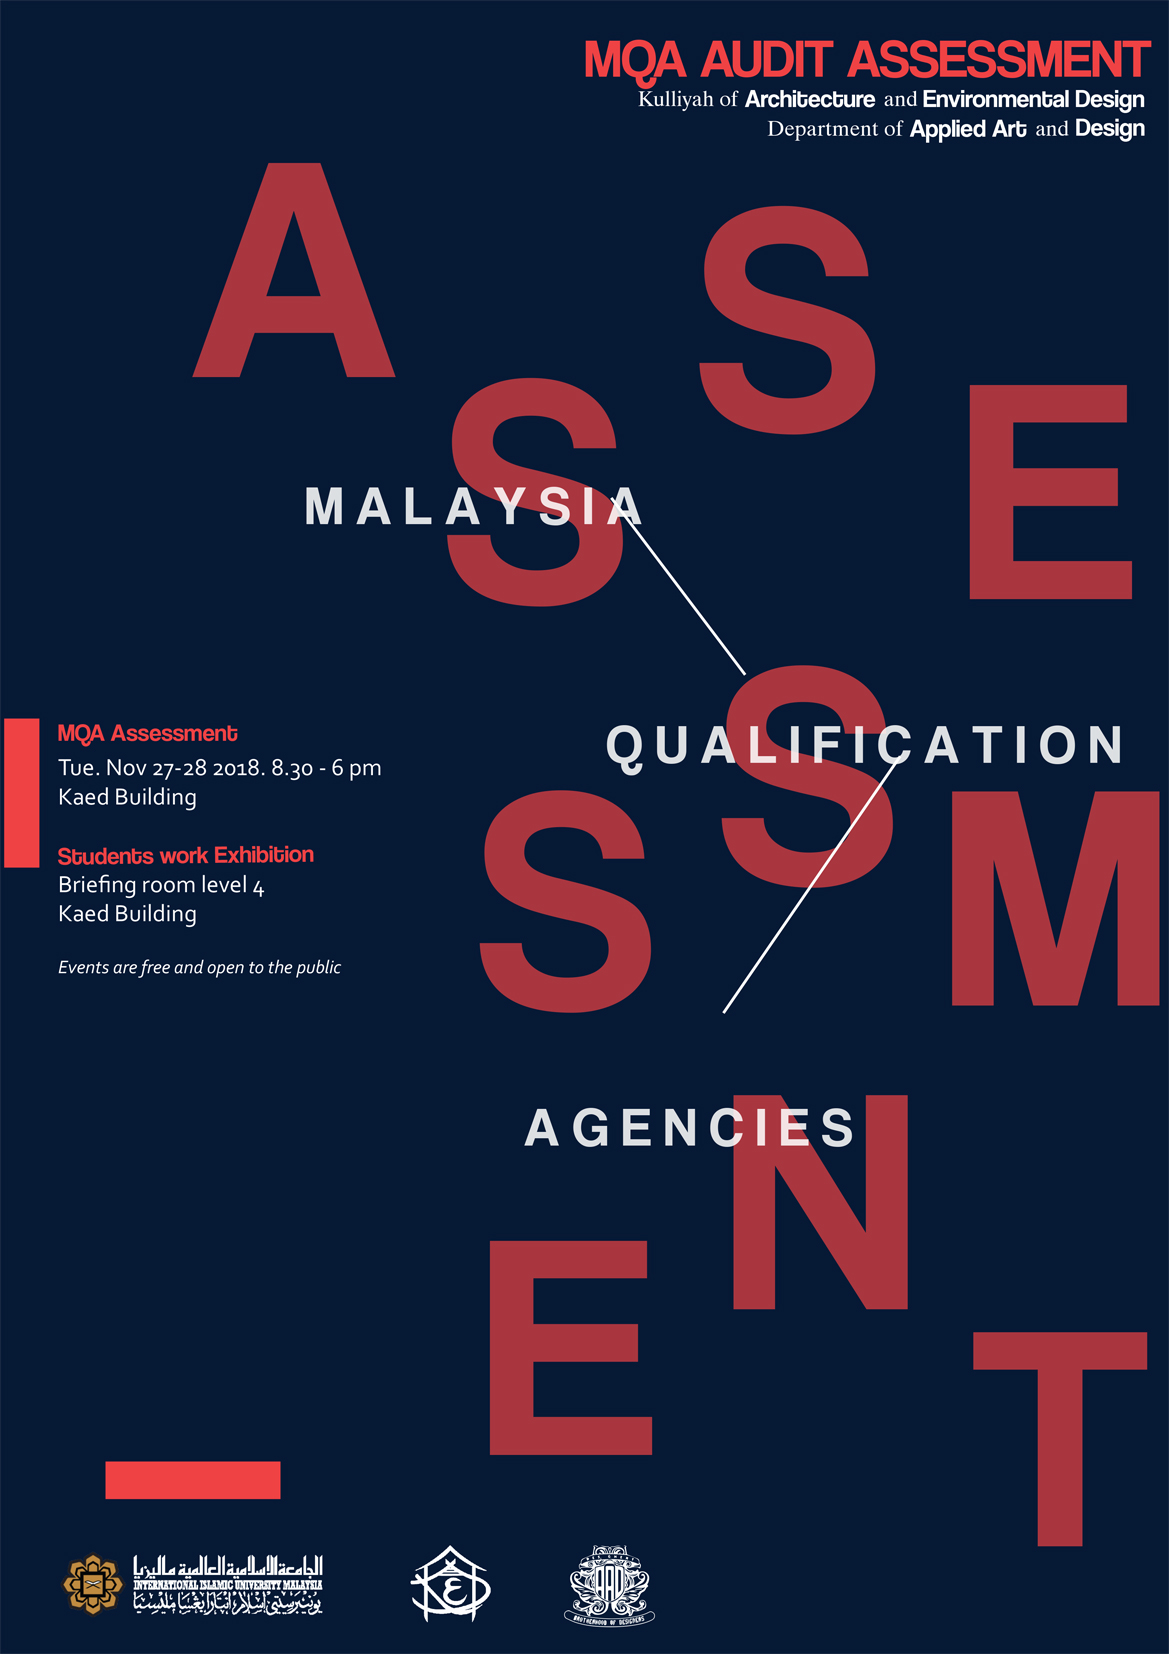 MQA Audit Assessment 2018 for Department of Applied Arts and Design